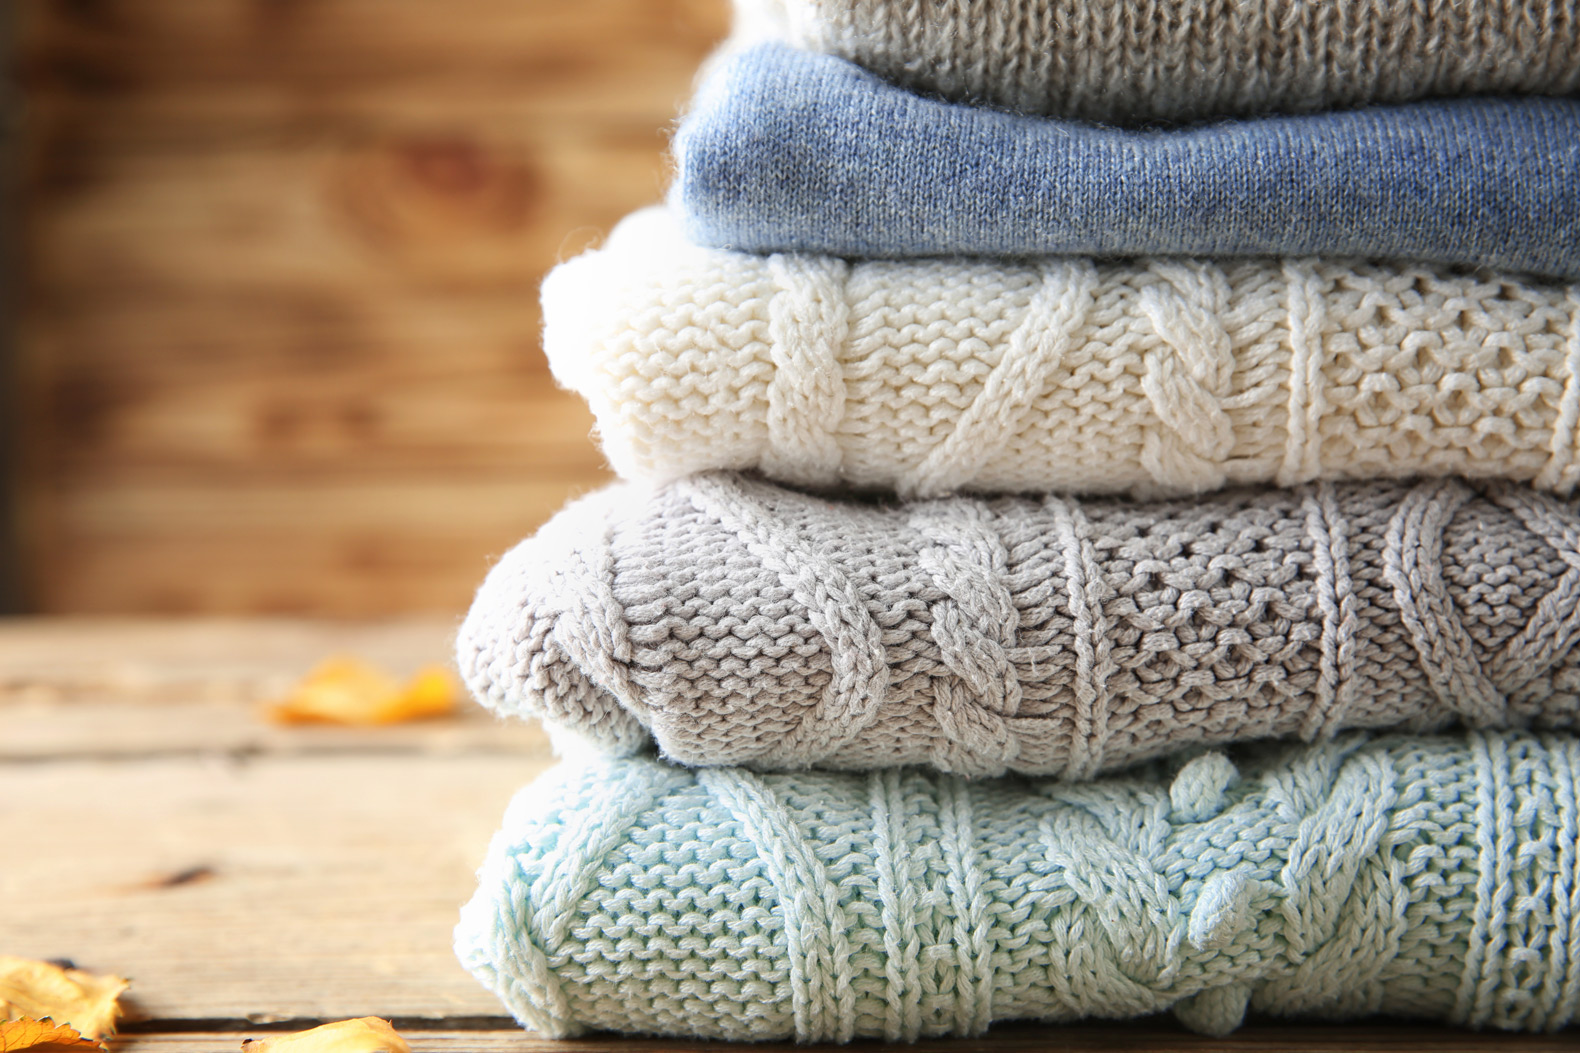 17 easy ways to upcycle worn out sweaters